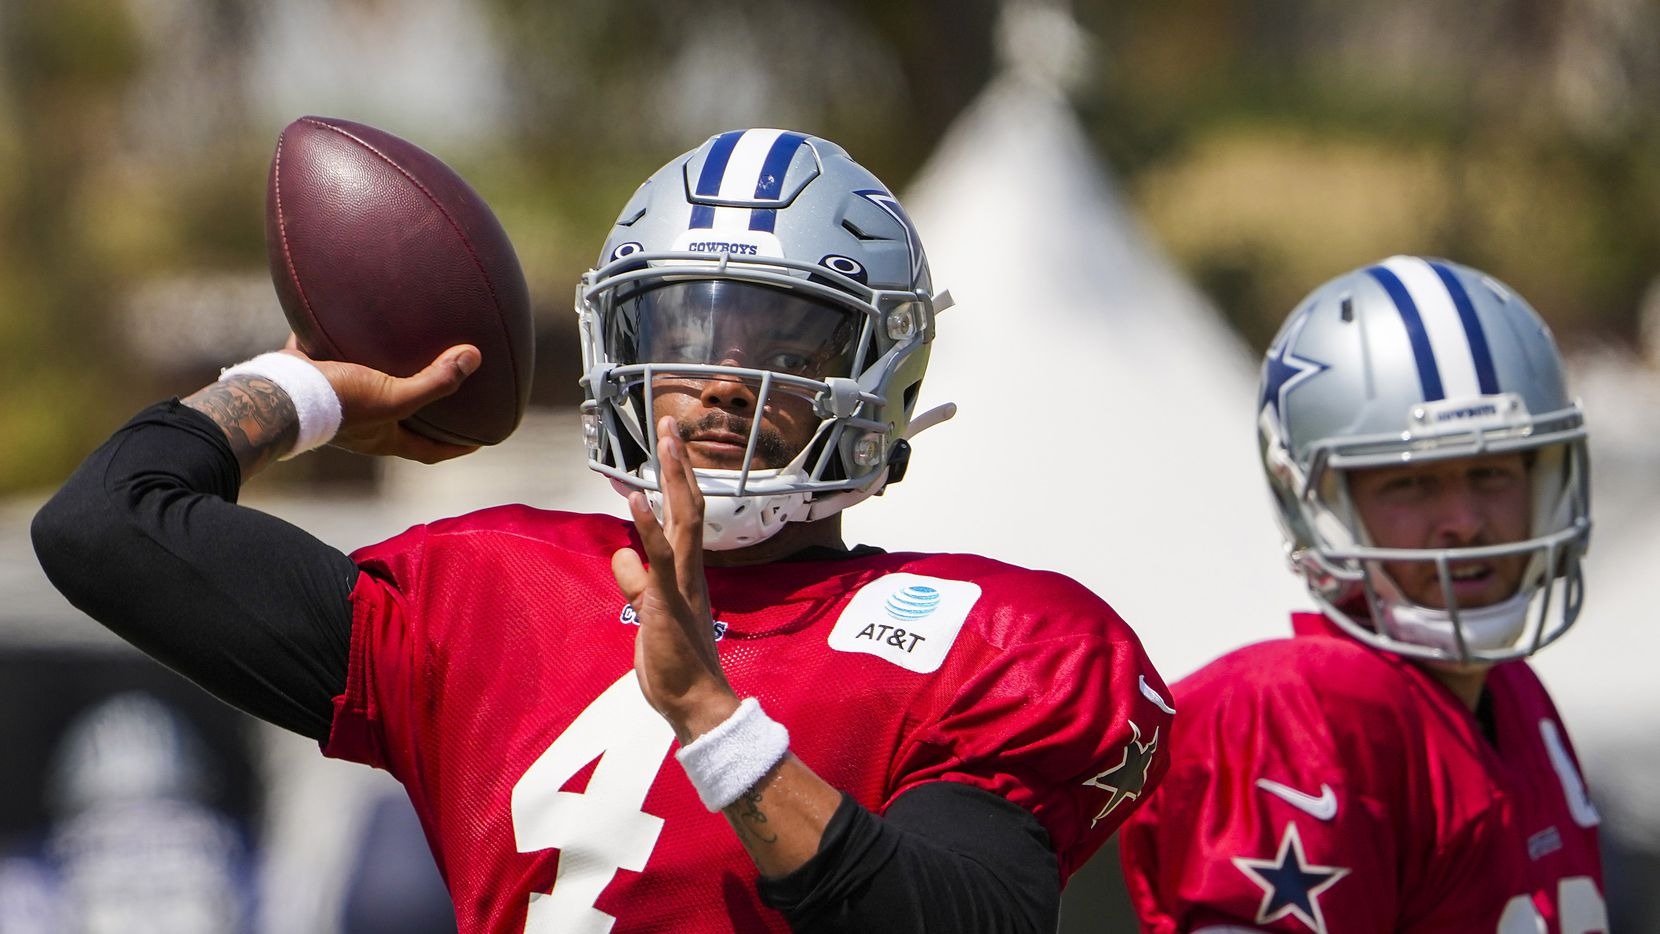 Dallas Cowboys quarterback Dak Prescott (4) throws a pass as quarterback Cooper Rush (10) looks on during a practice at training camp on Wednesday, July 28, 2021, in Oxnard, Calif.